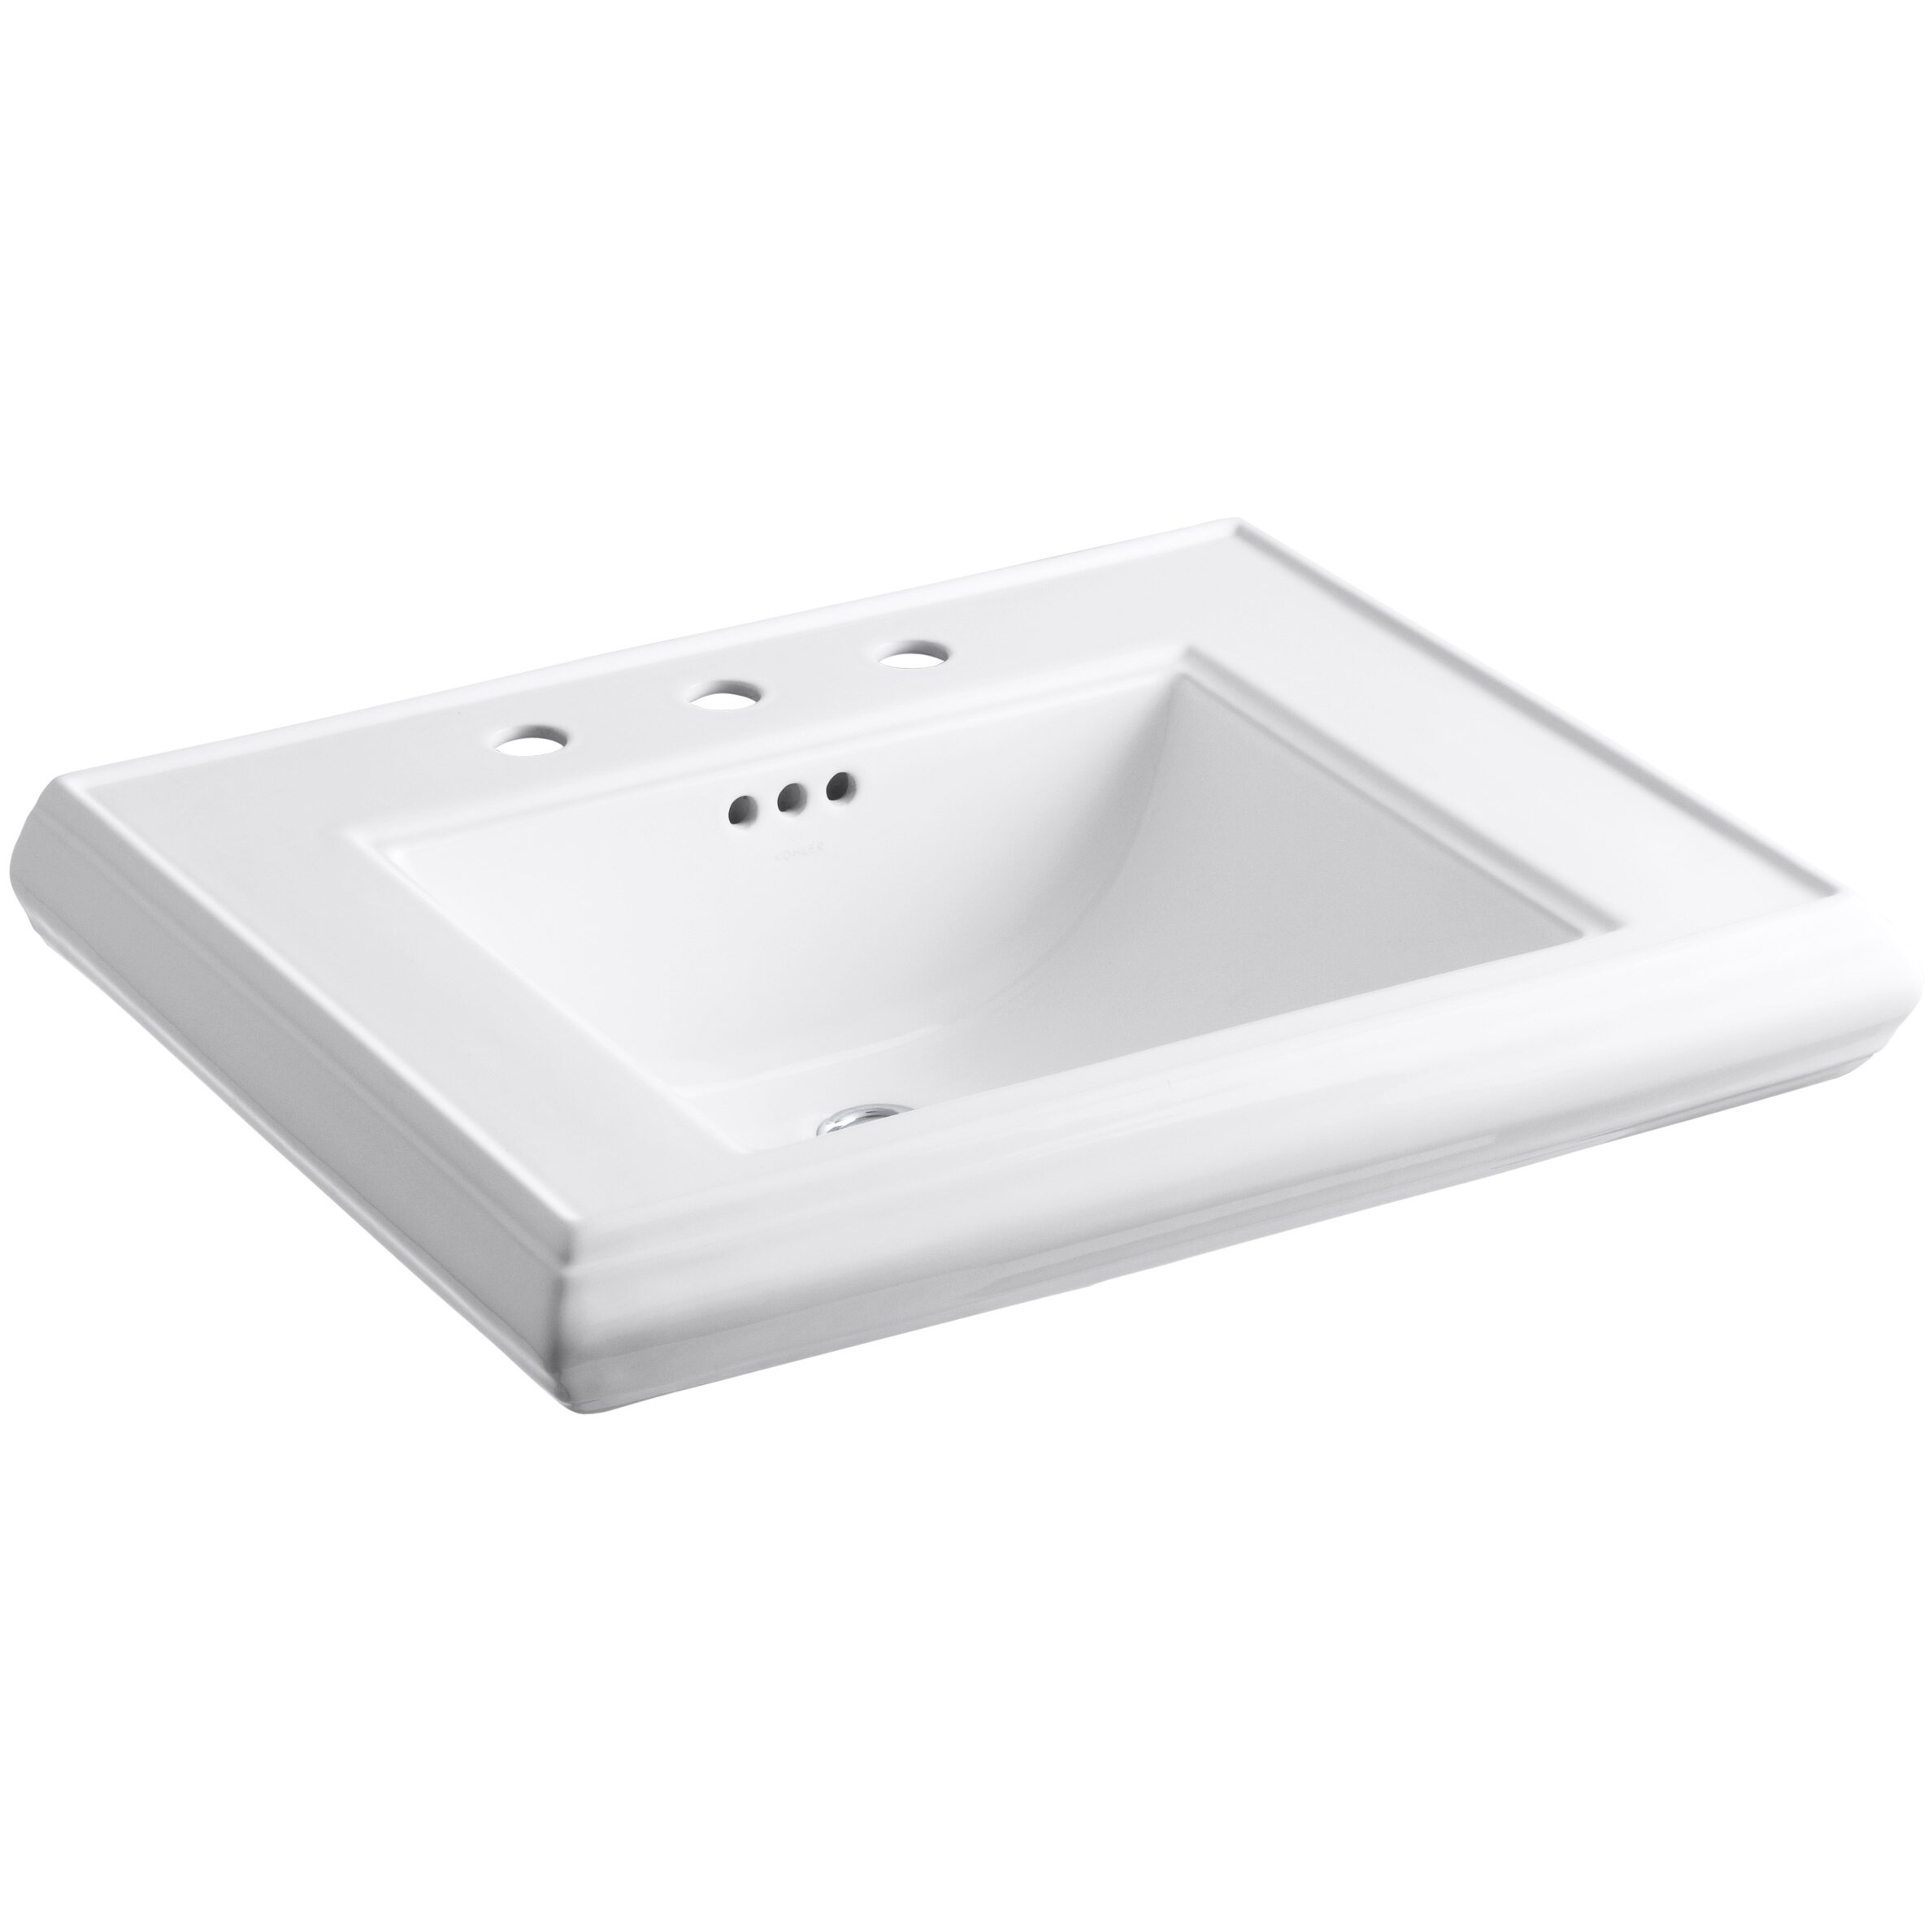 Kohler Memoirs Pedestal Bathroom Sink Basin & Reviews Wayfair